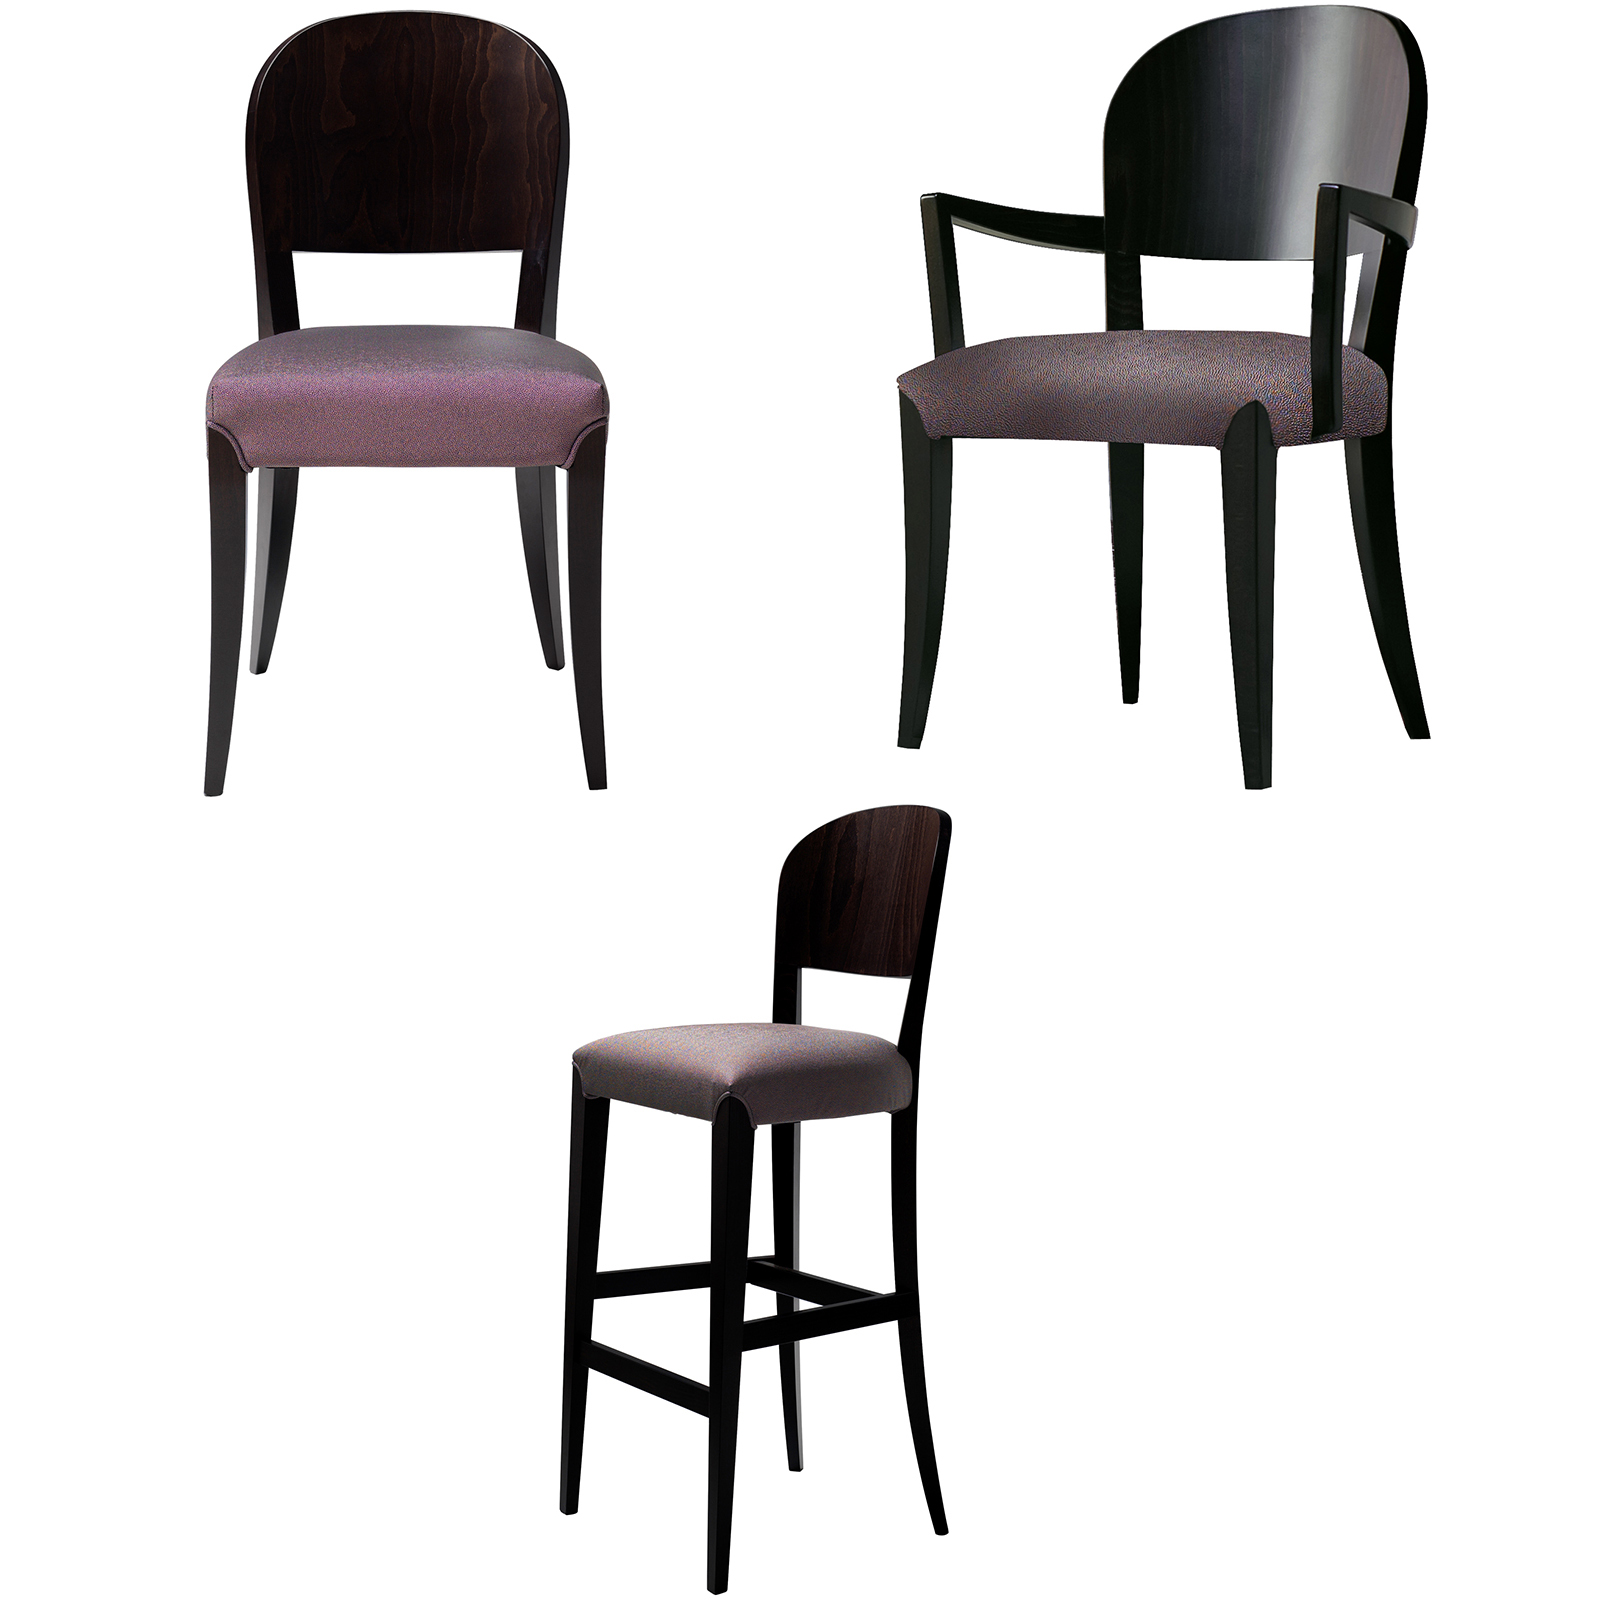 How To Upholster A Dining Room Chair Squero C Hsi Hotel Furniture